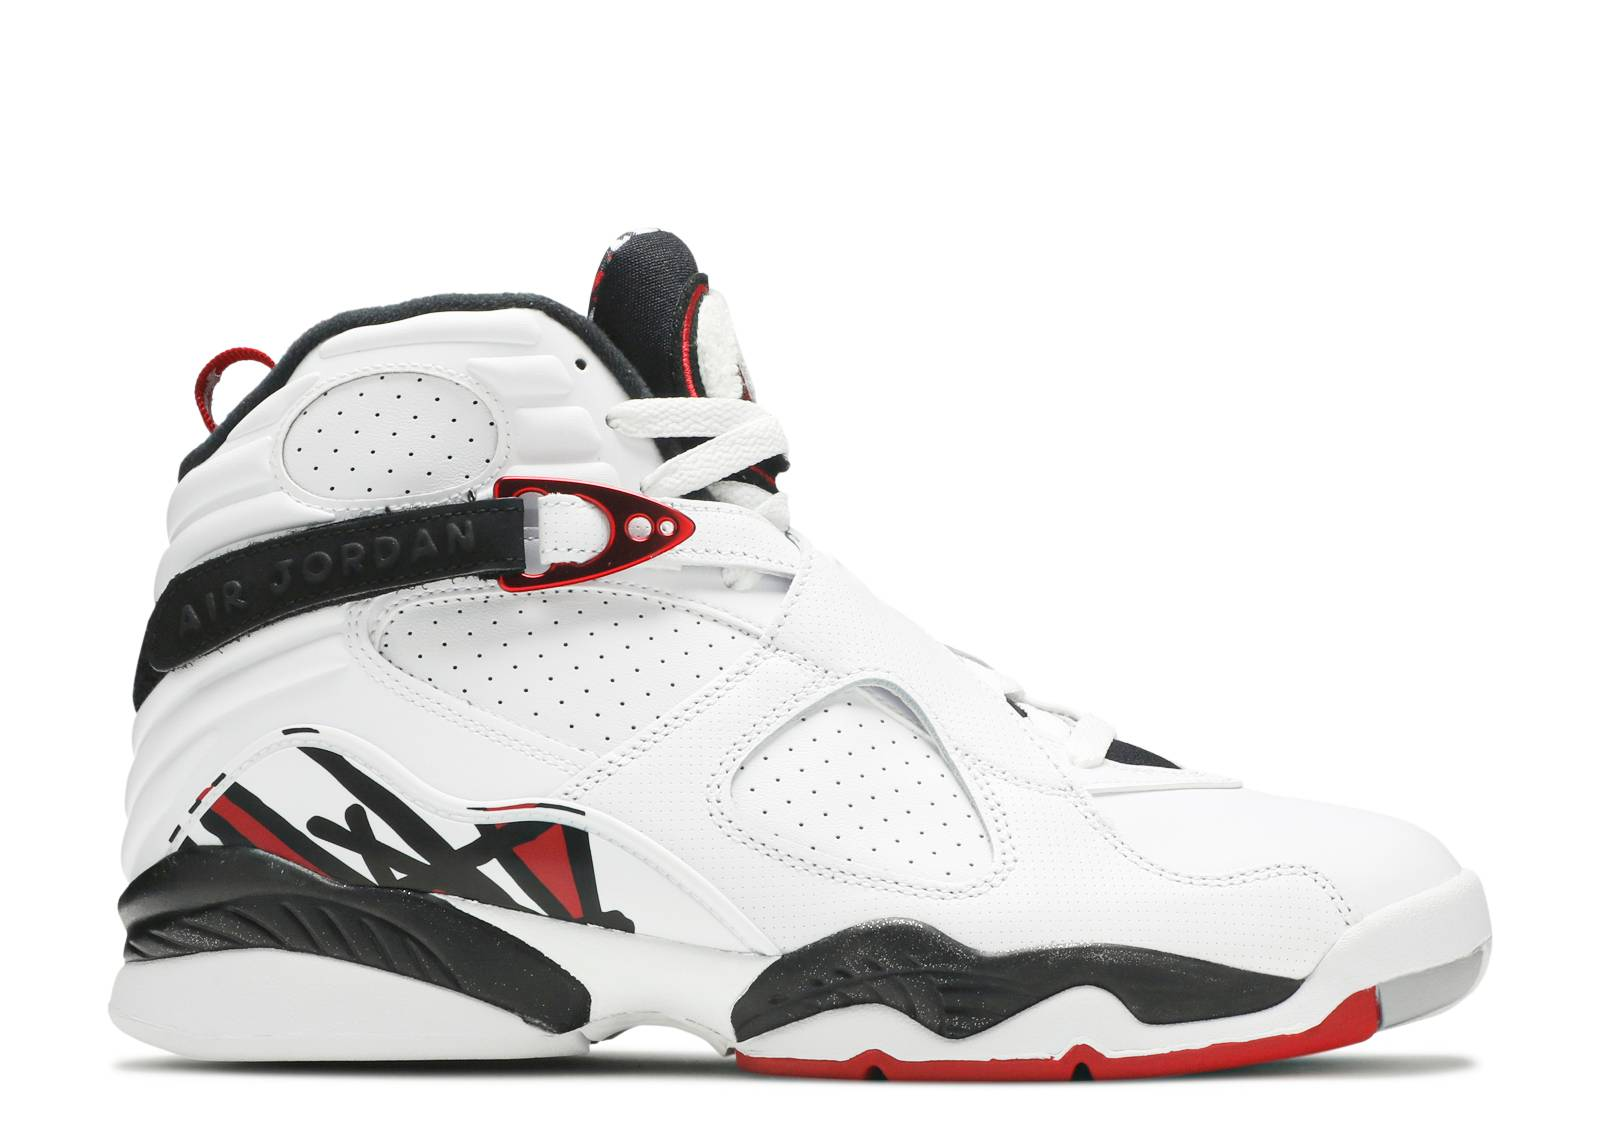 low priced 1ca48 49411 air jordan 8 retro